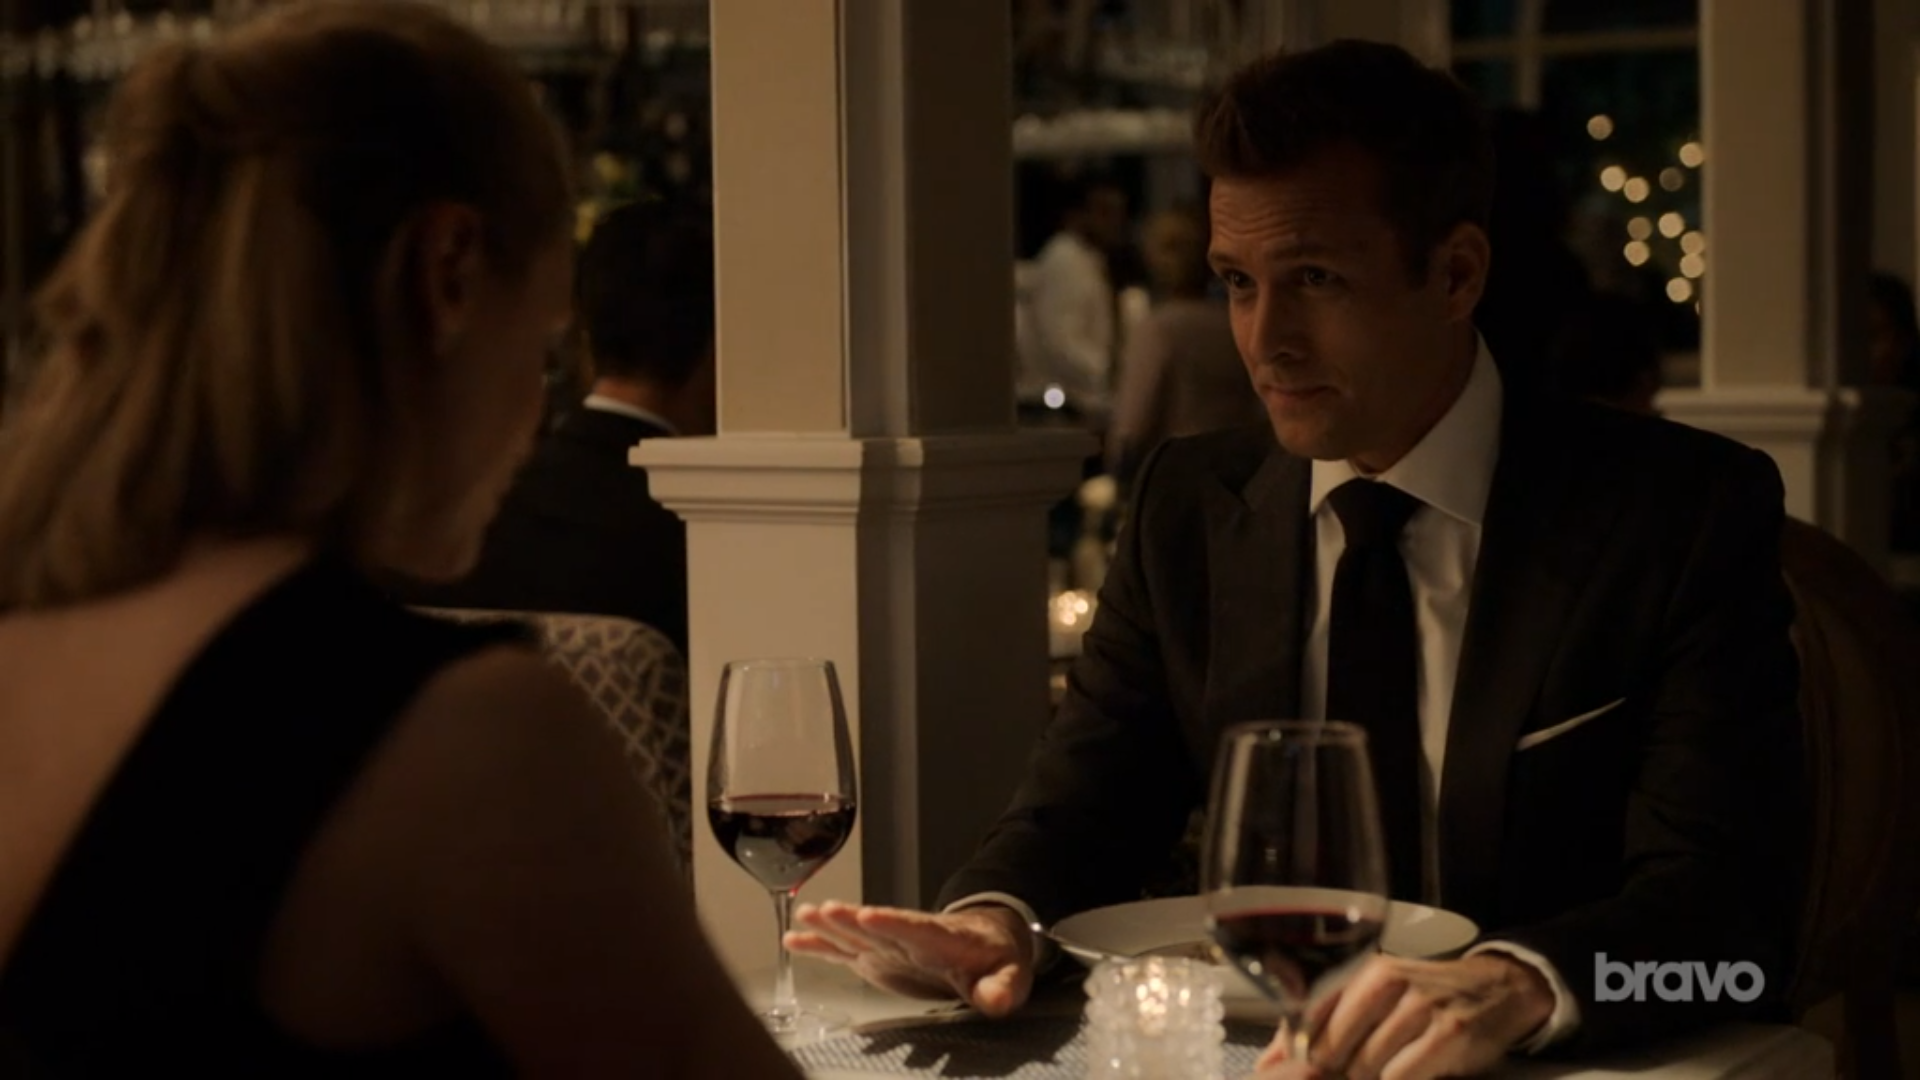 Suits harvey dating